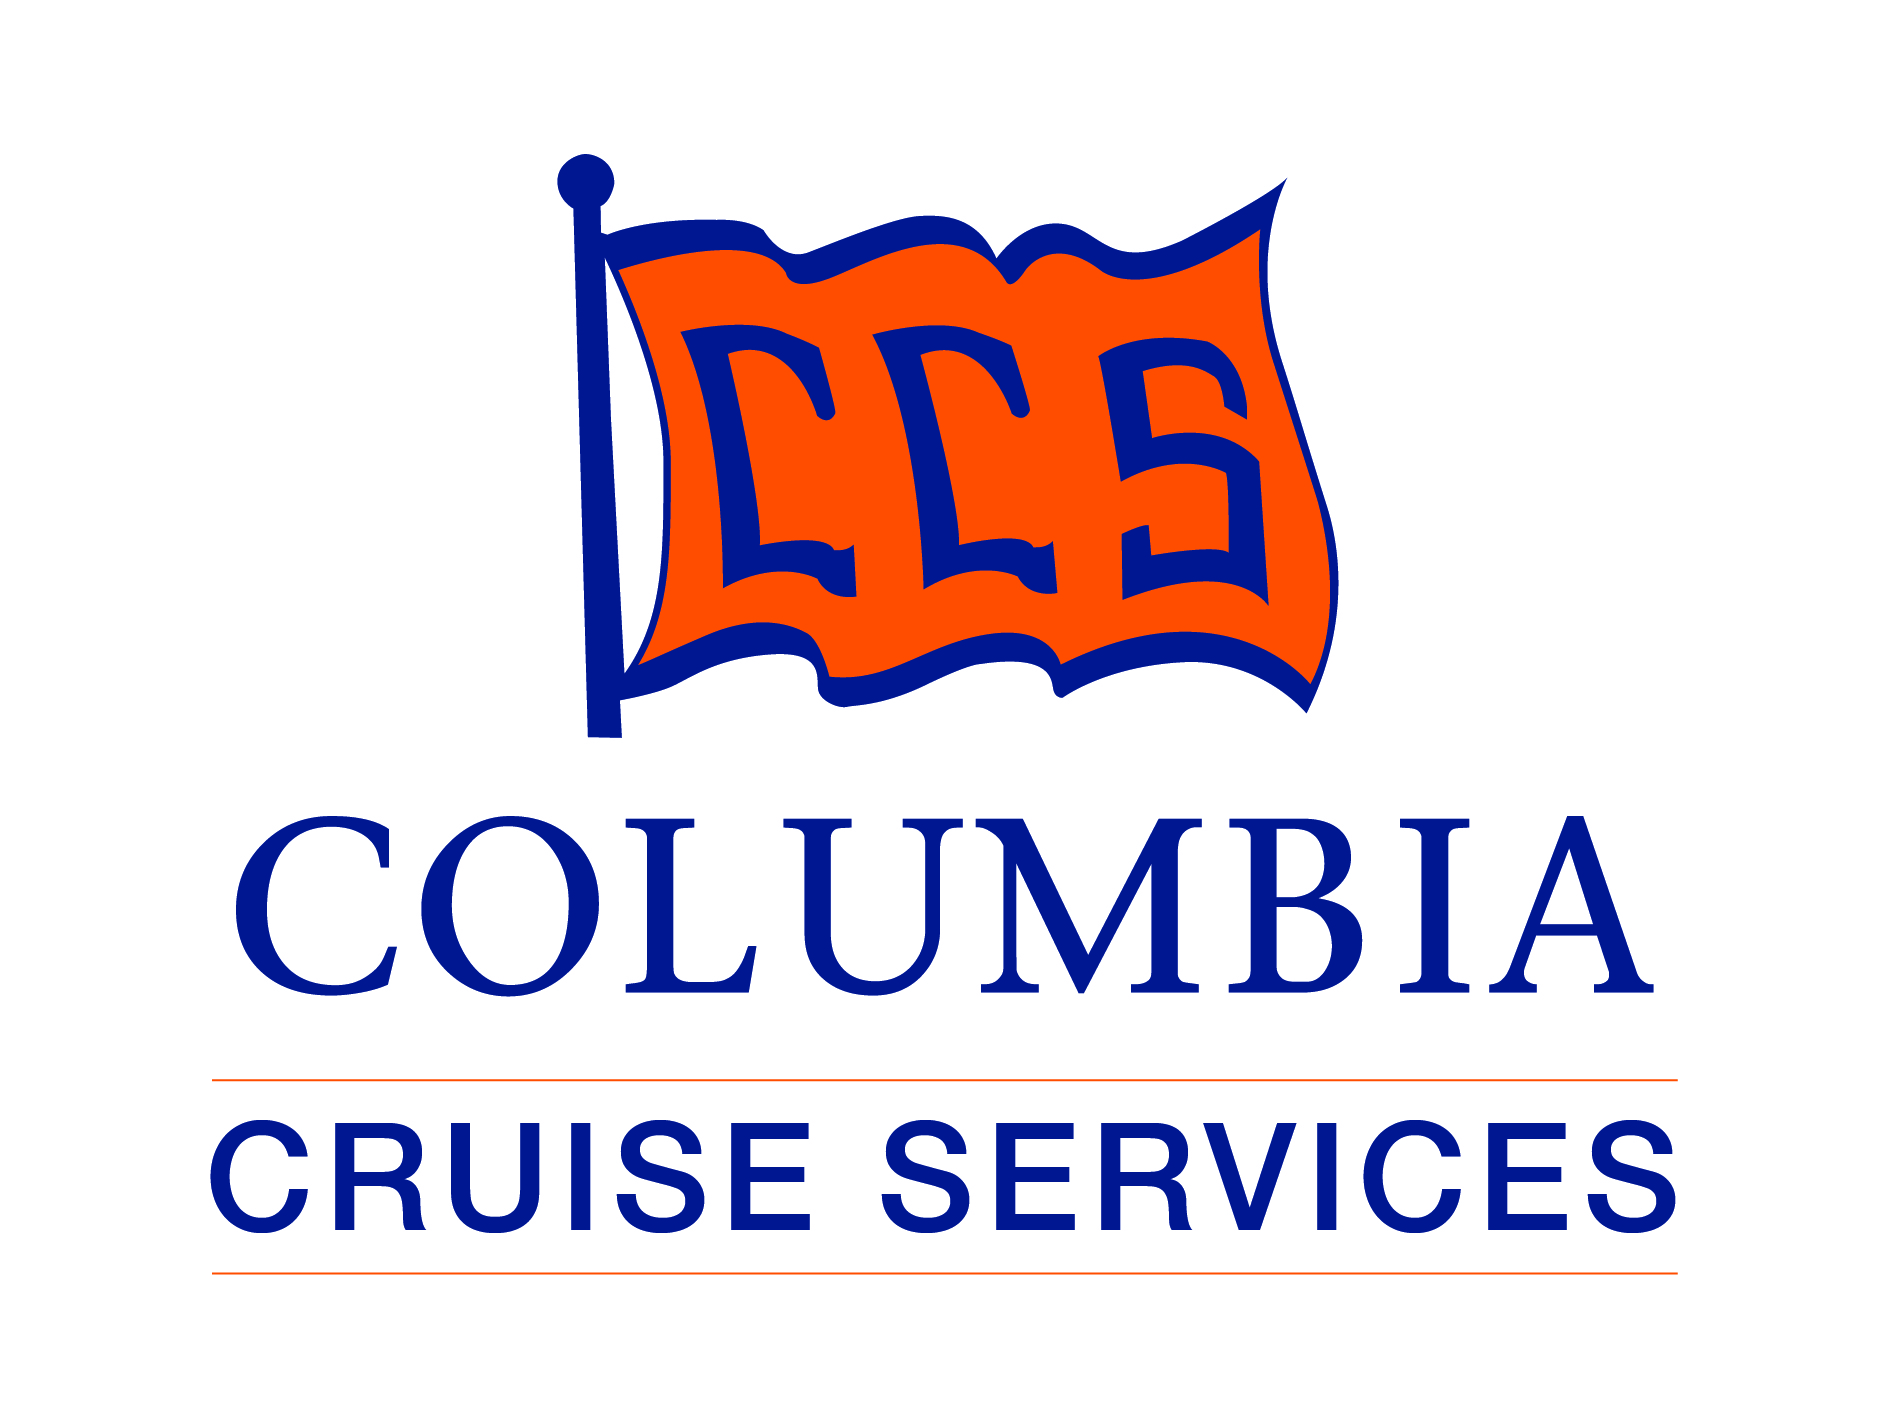 COLUMBIA Cruise Services GmbH & Co. KG